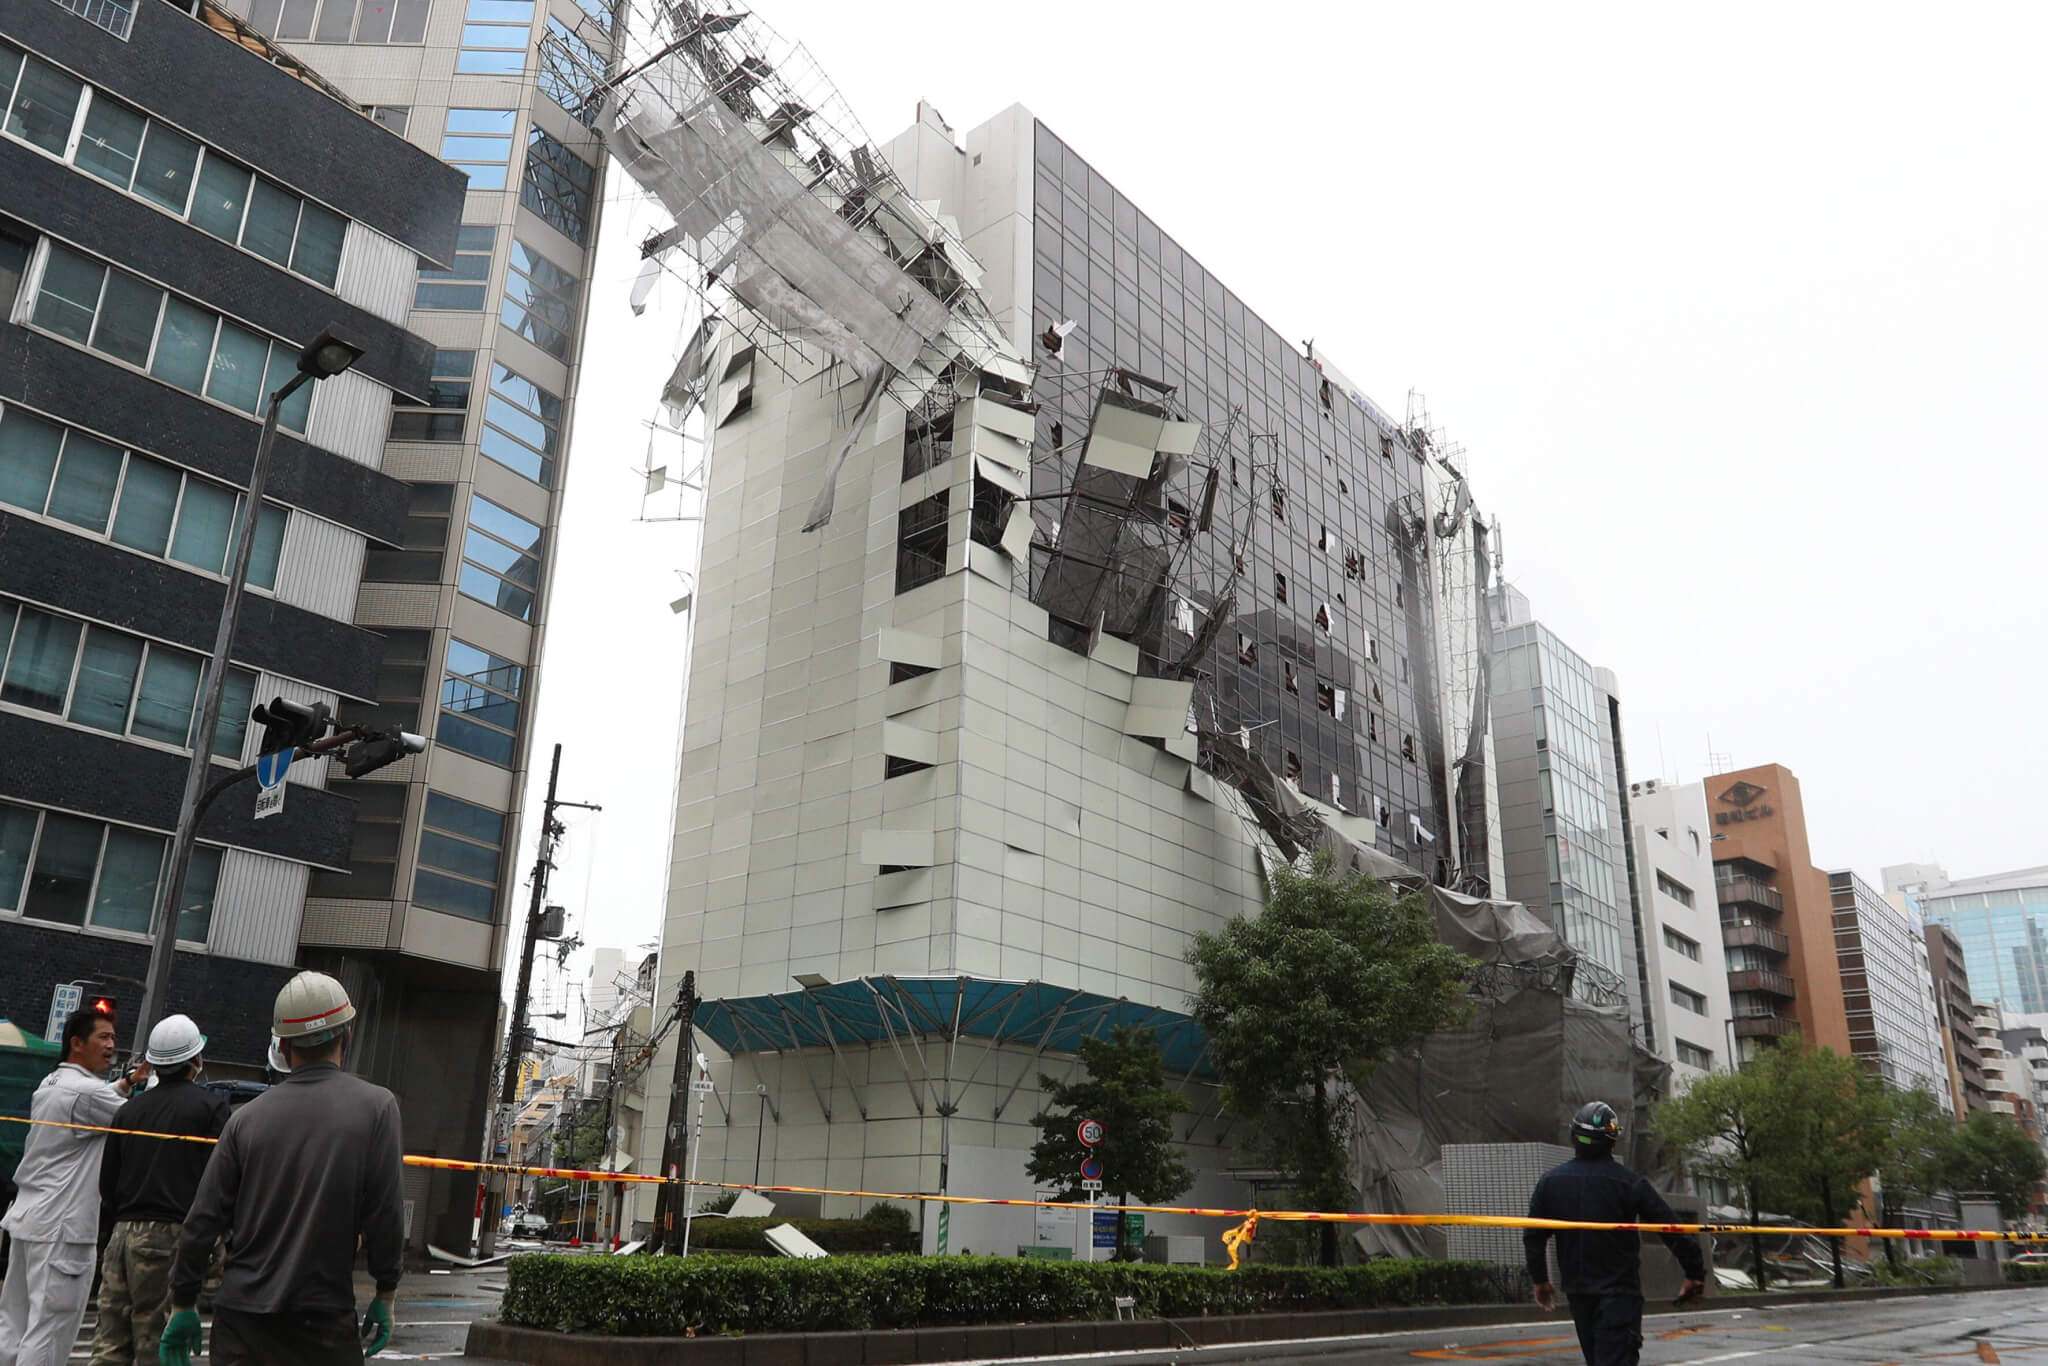 Scaffold collapses due to typhoon Jebi in Osaka.